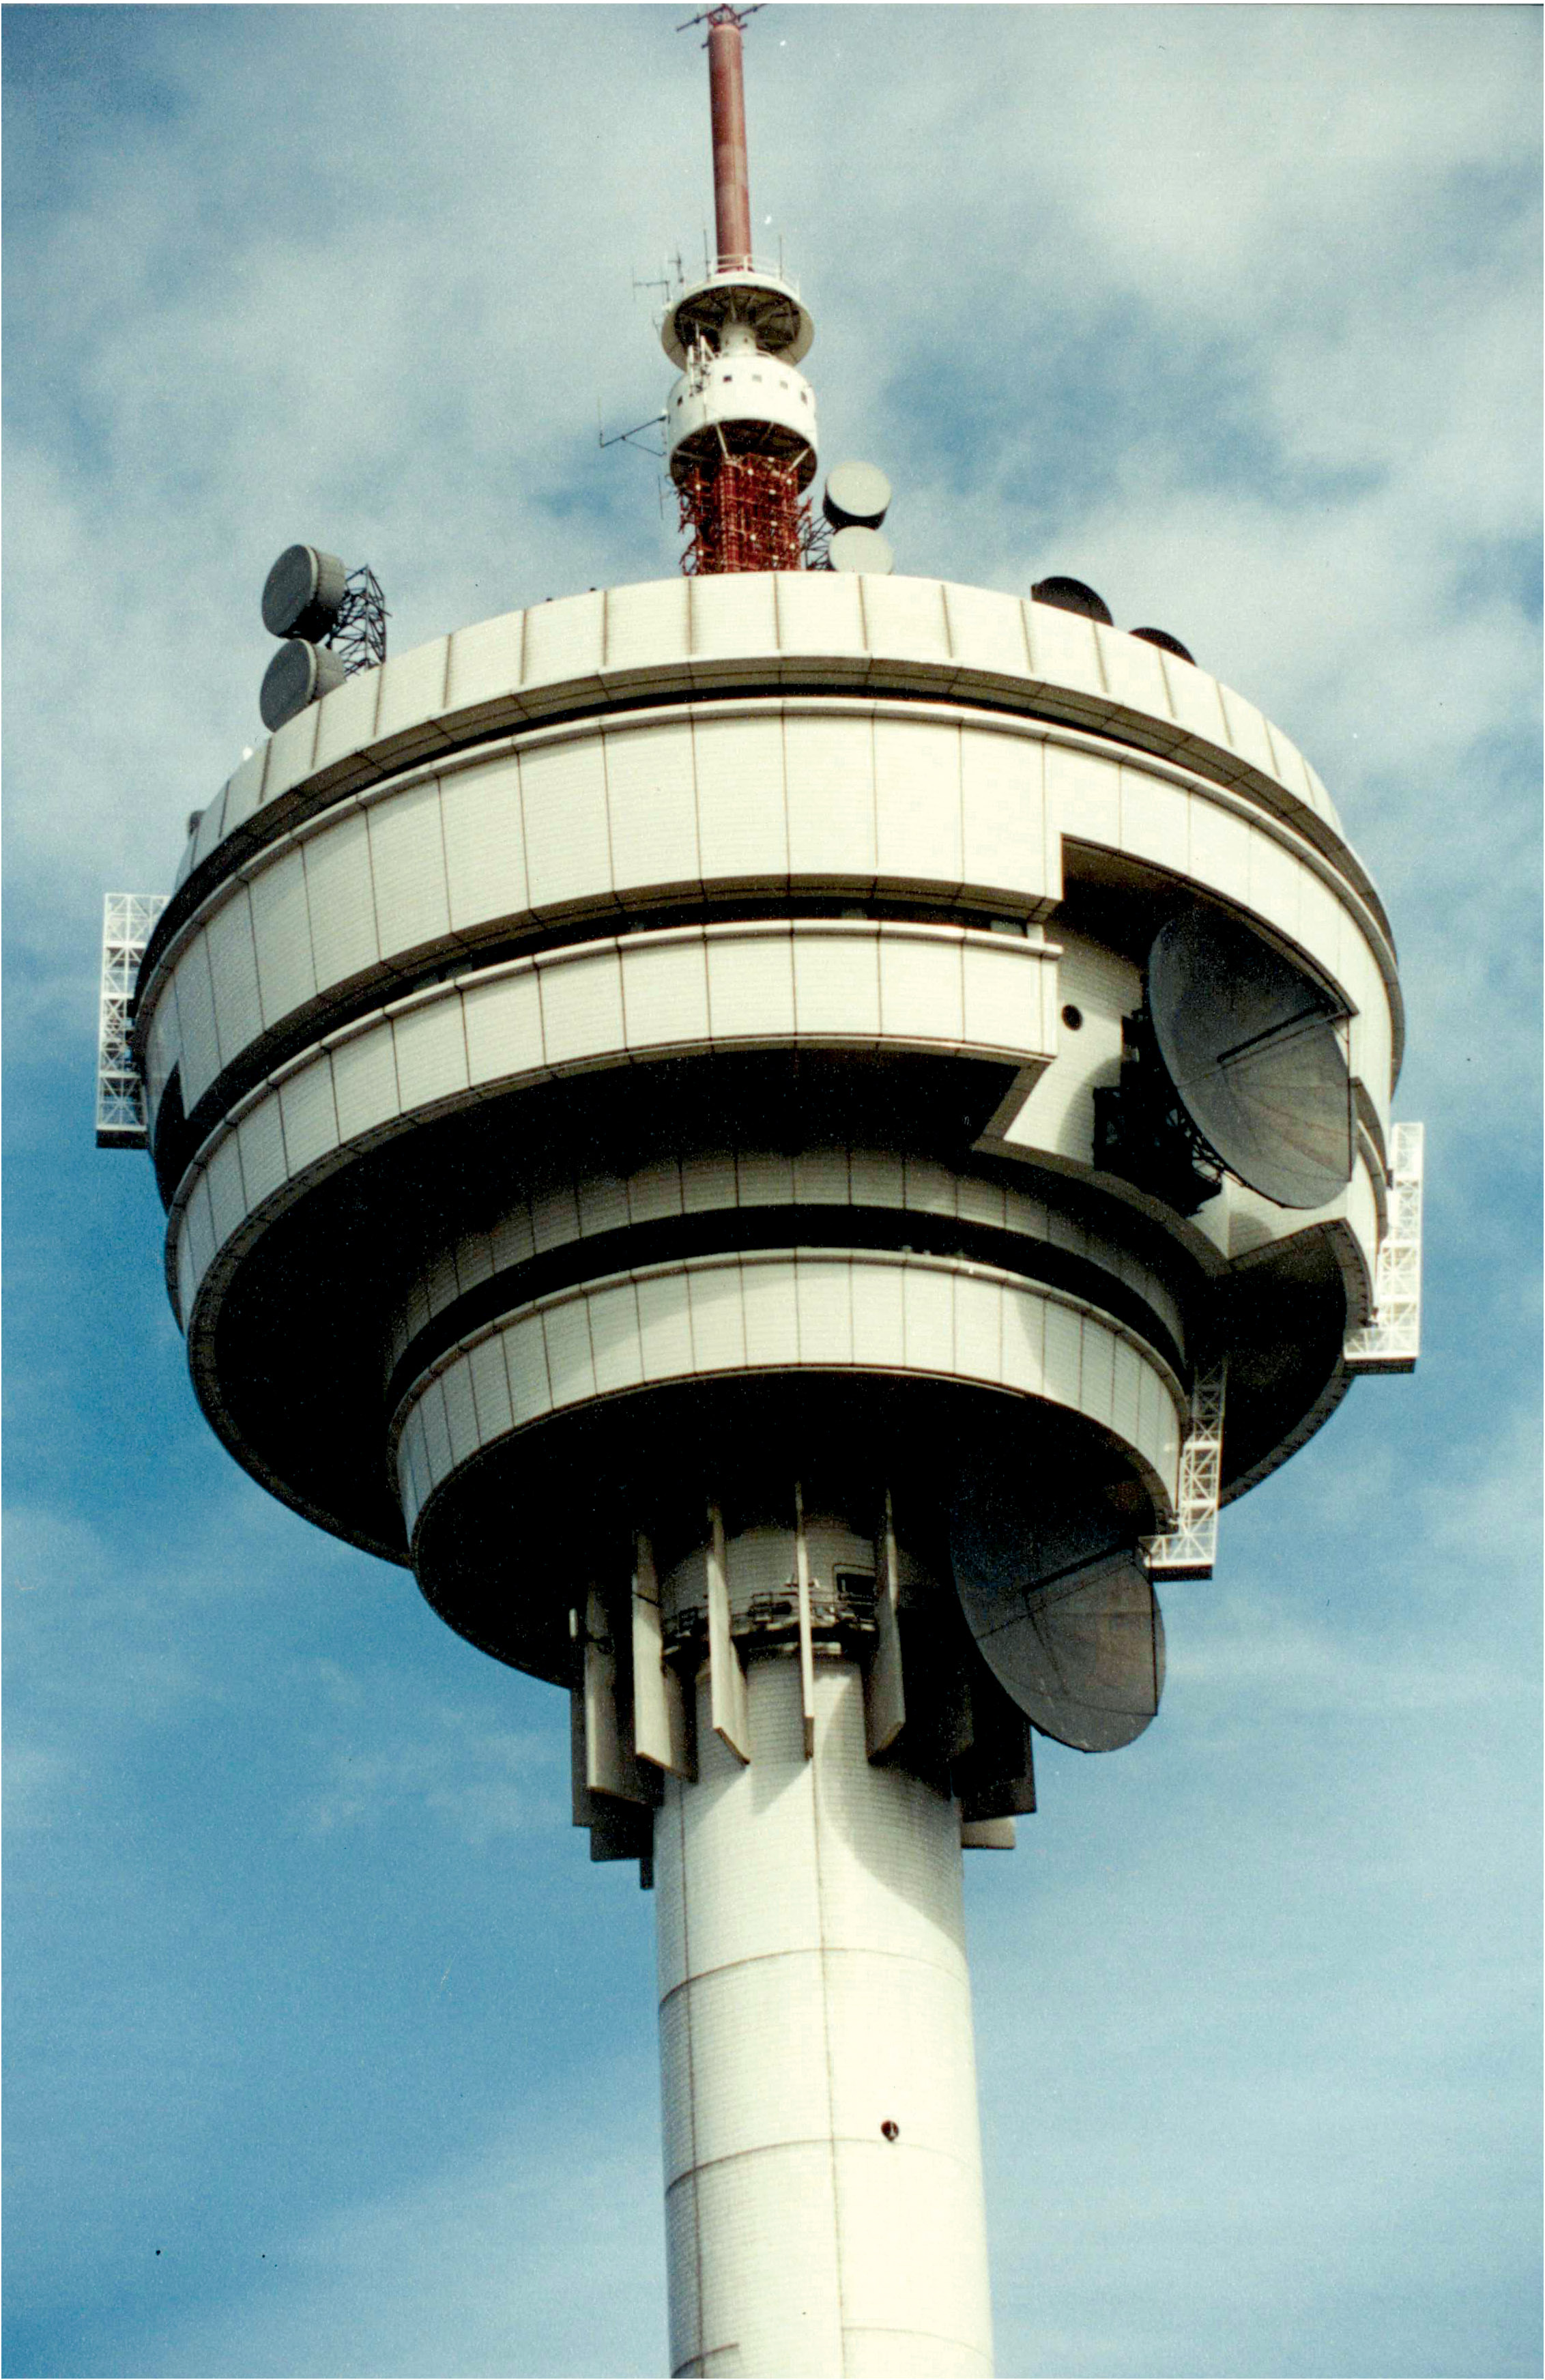 An aircontrol tower with JOMY ladders